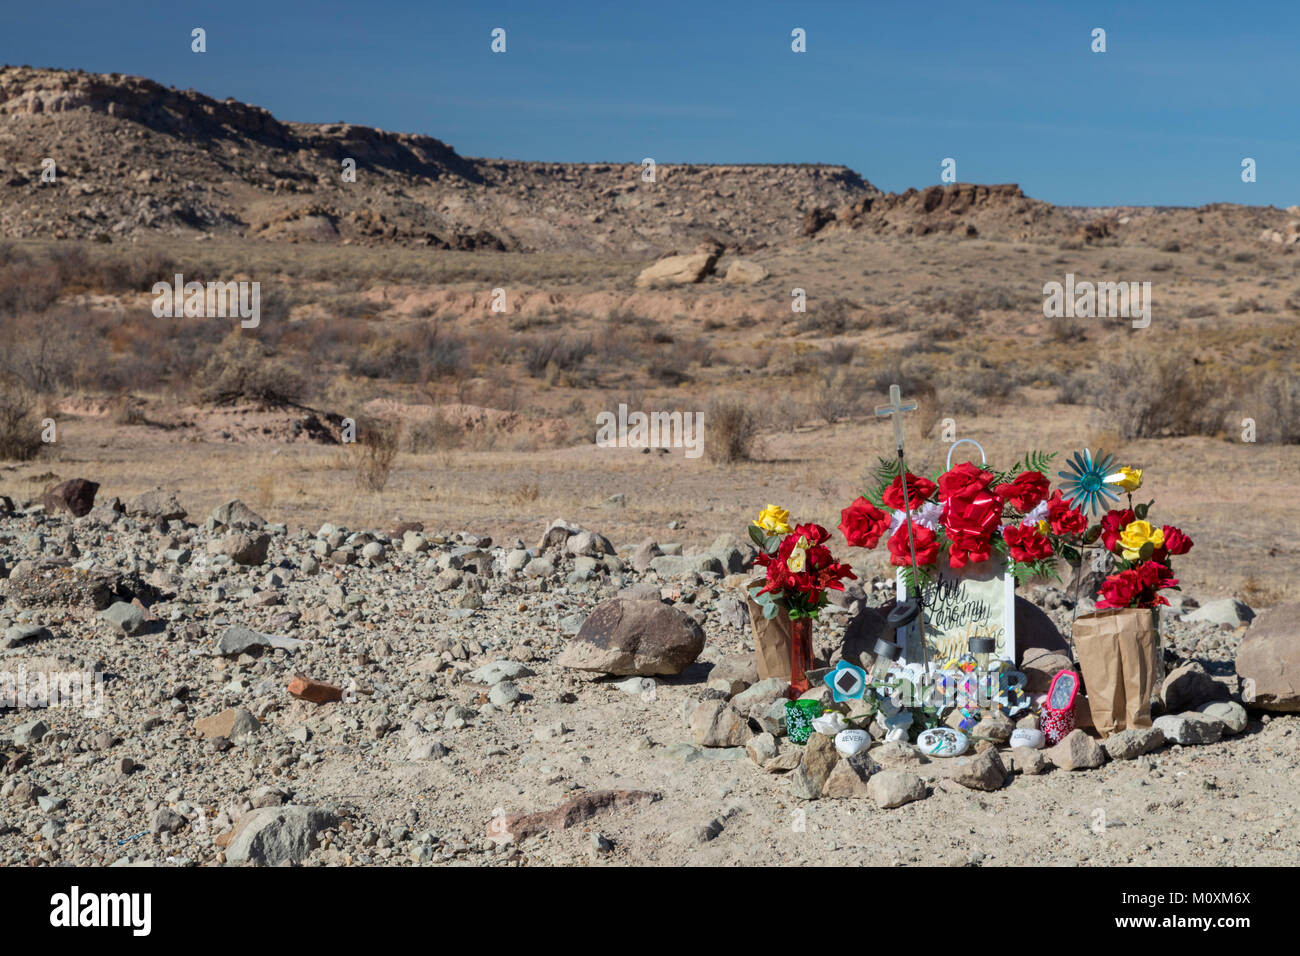 Aneth, Utah - A memorial on the Navajo Indian Reservation along a rural road. - Stock Image